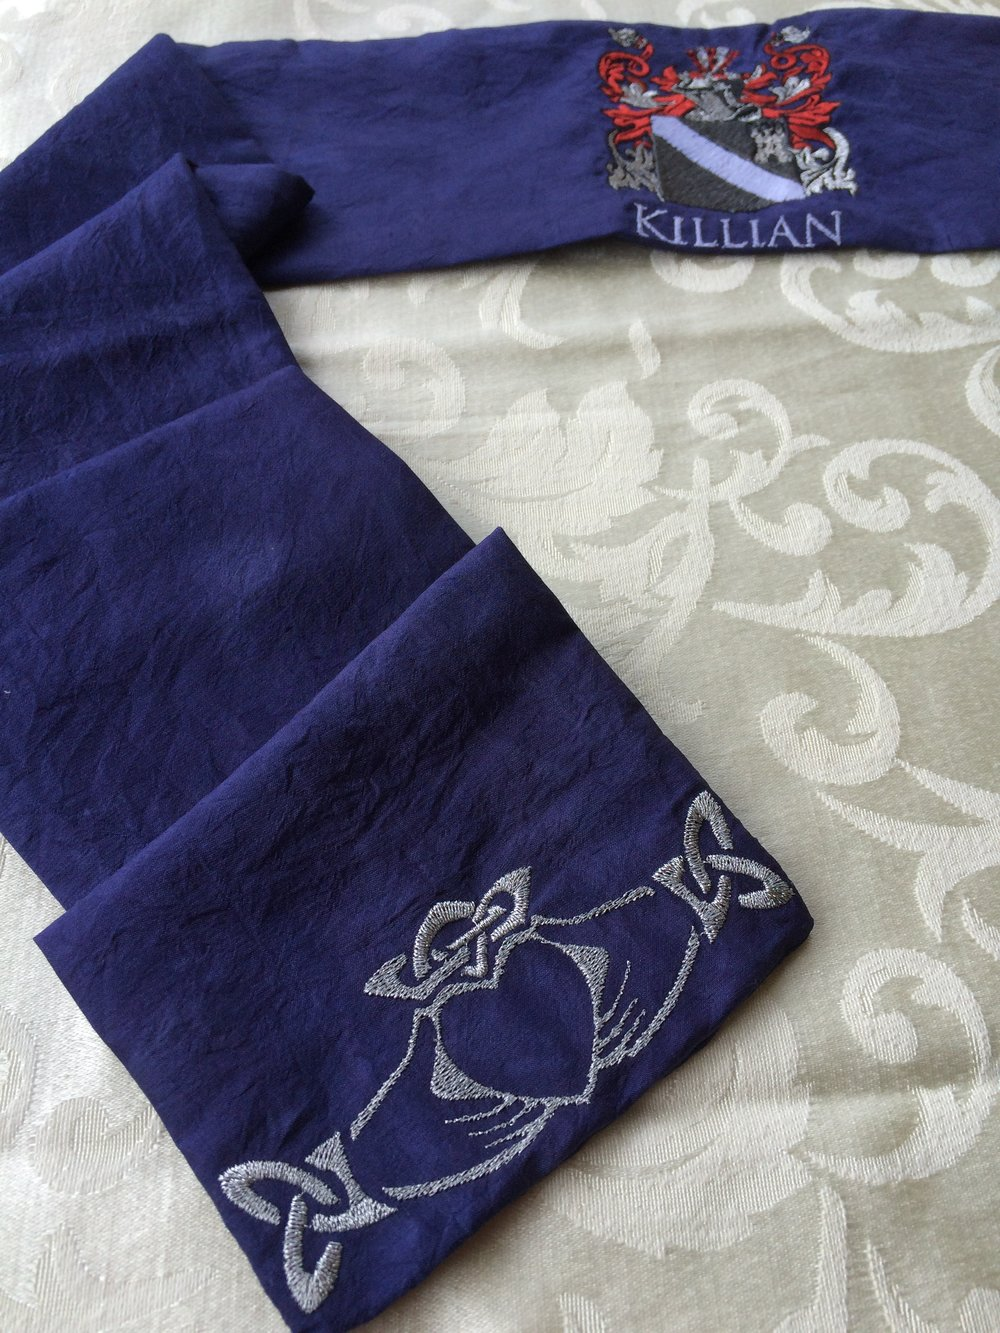 Custom-dyed blue silk cloth<br> with family crest.